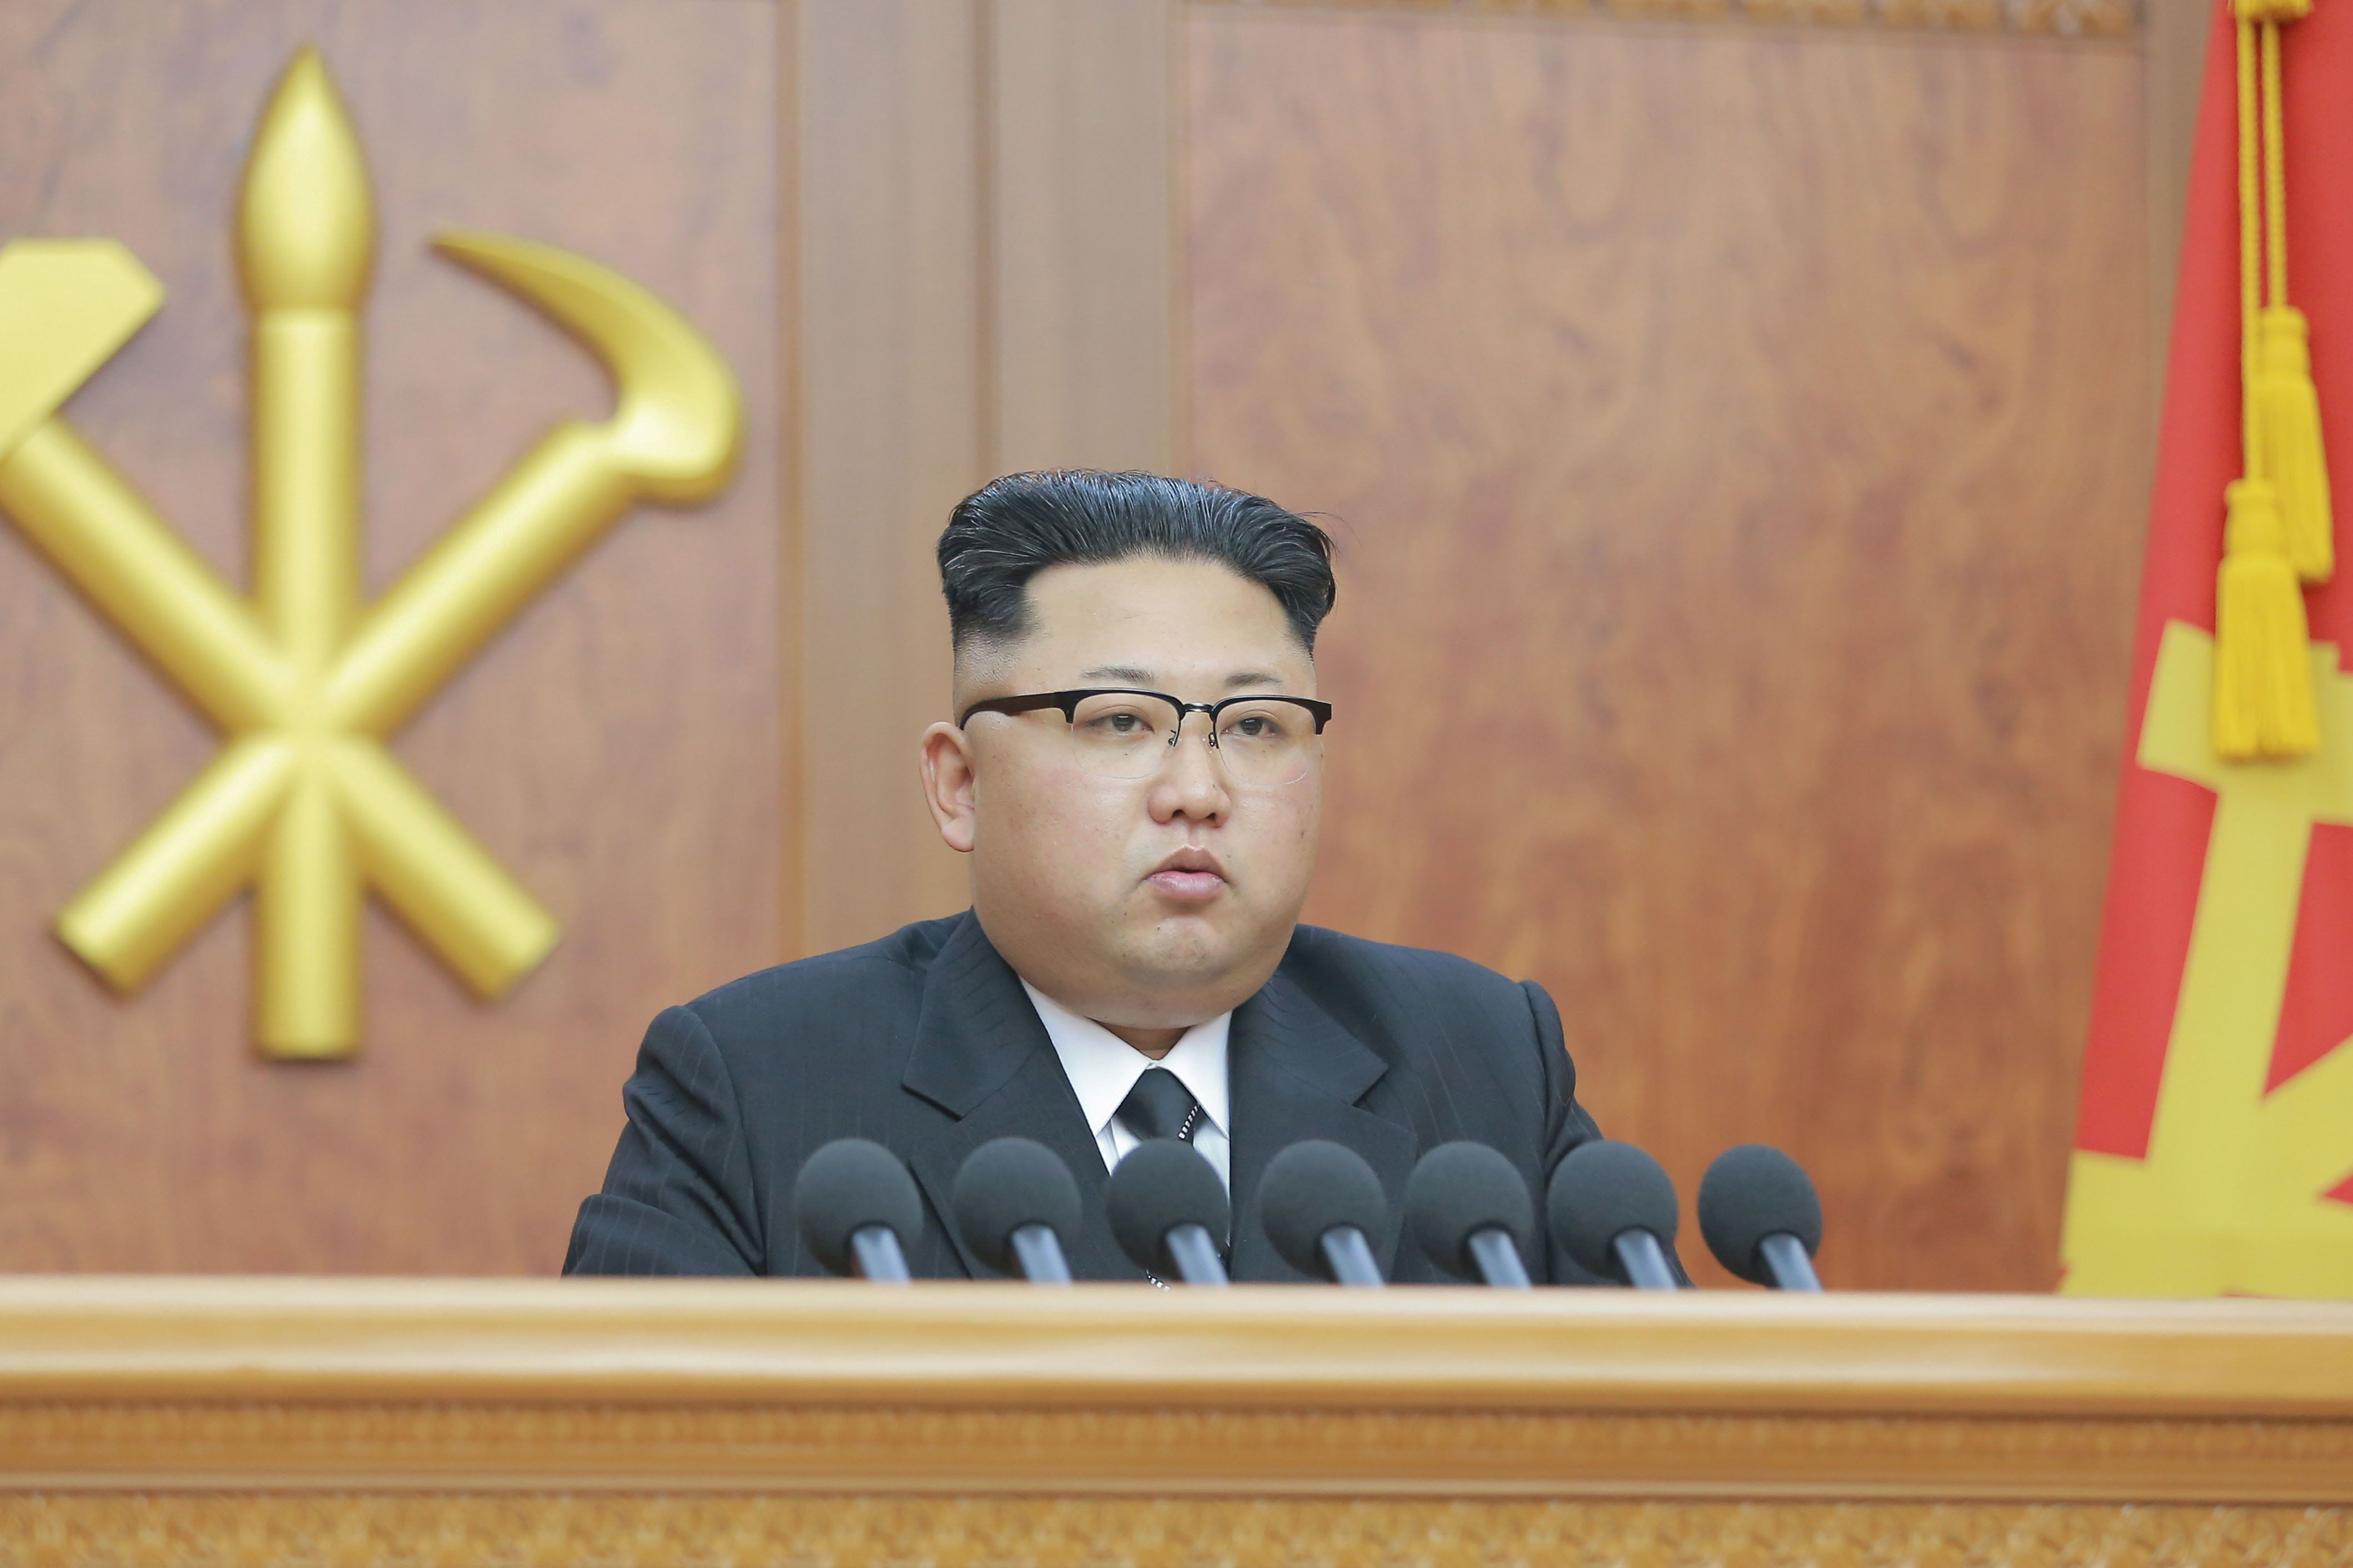 Kim Jong Un delivered a New Year's address in Pyongyang, North Korea, on Sunday, during which he said...